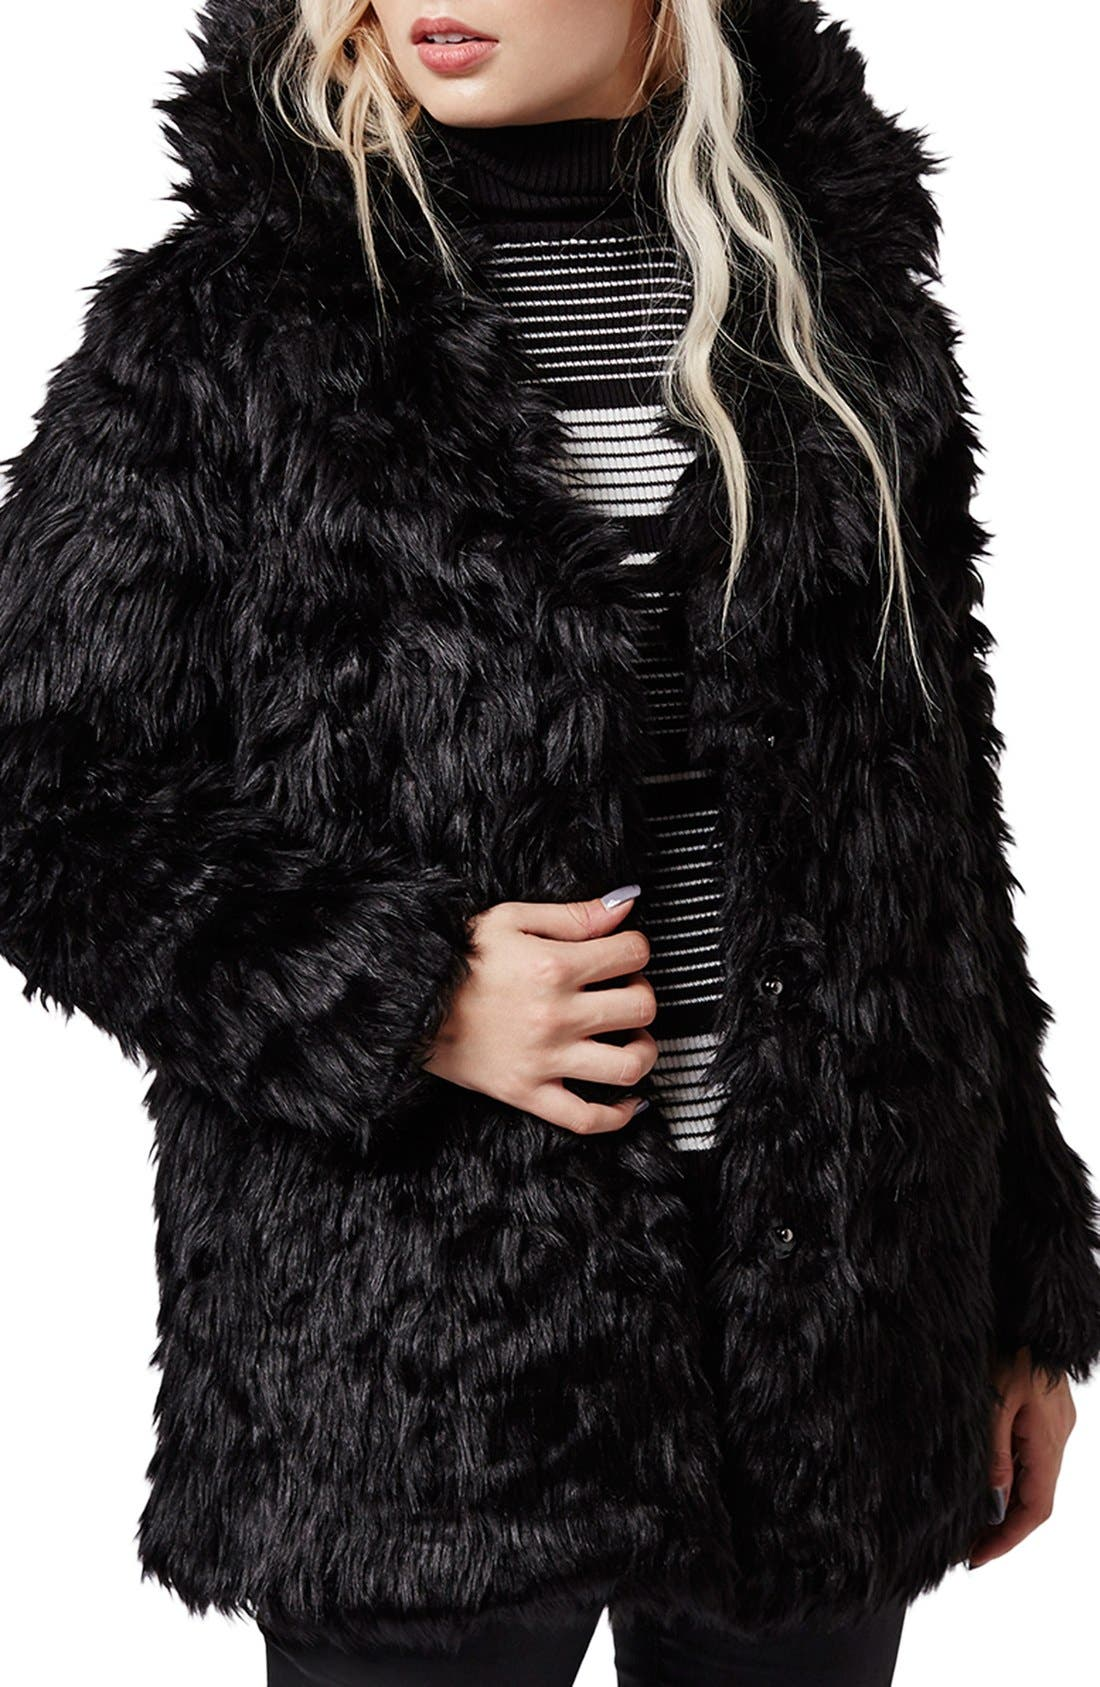 Urban Shaggy Faux Fur Coat,                             Main thumbnail 1, color,                             001